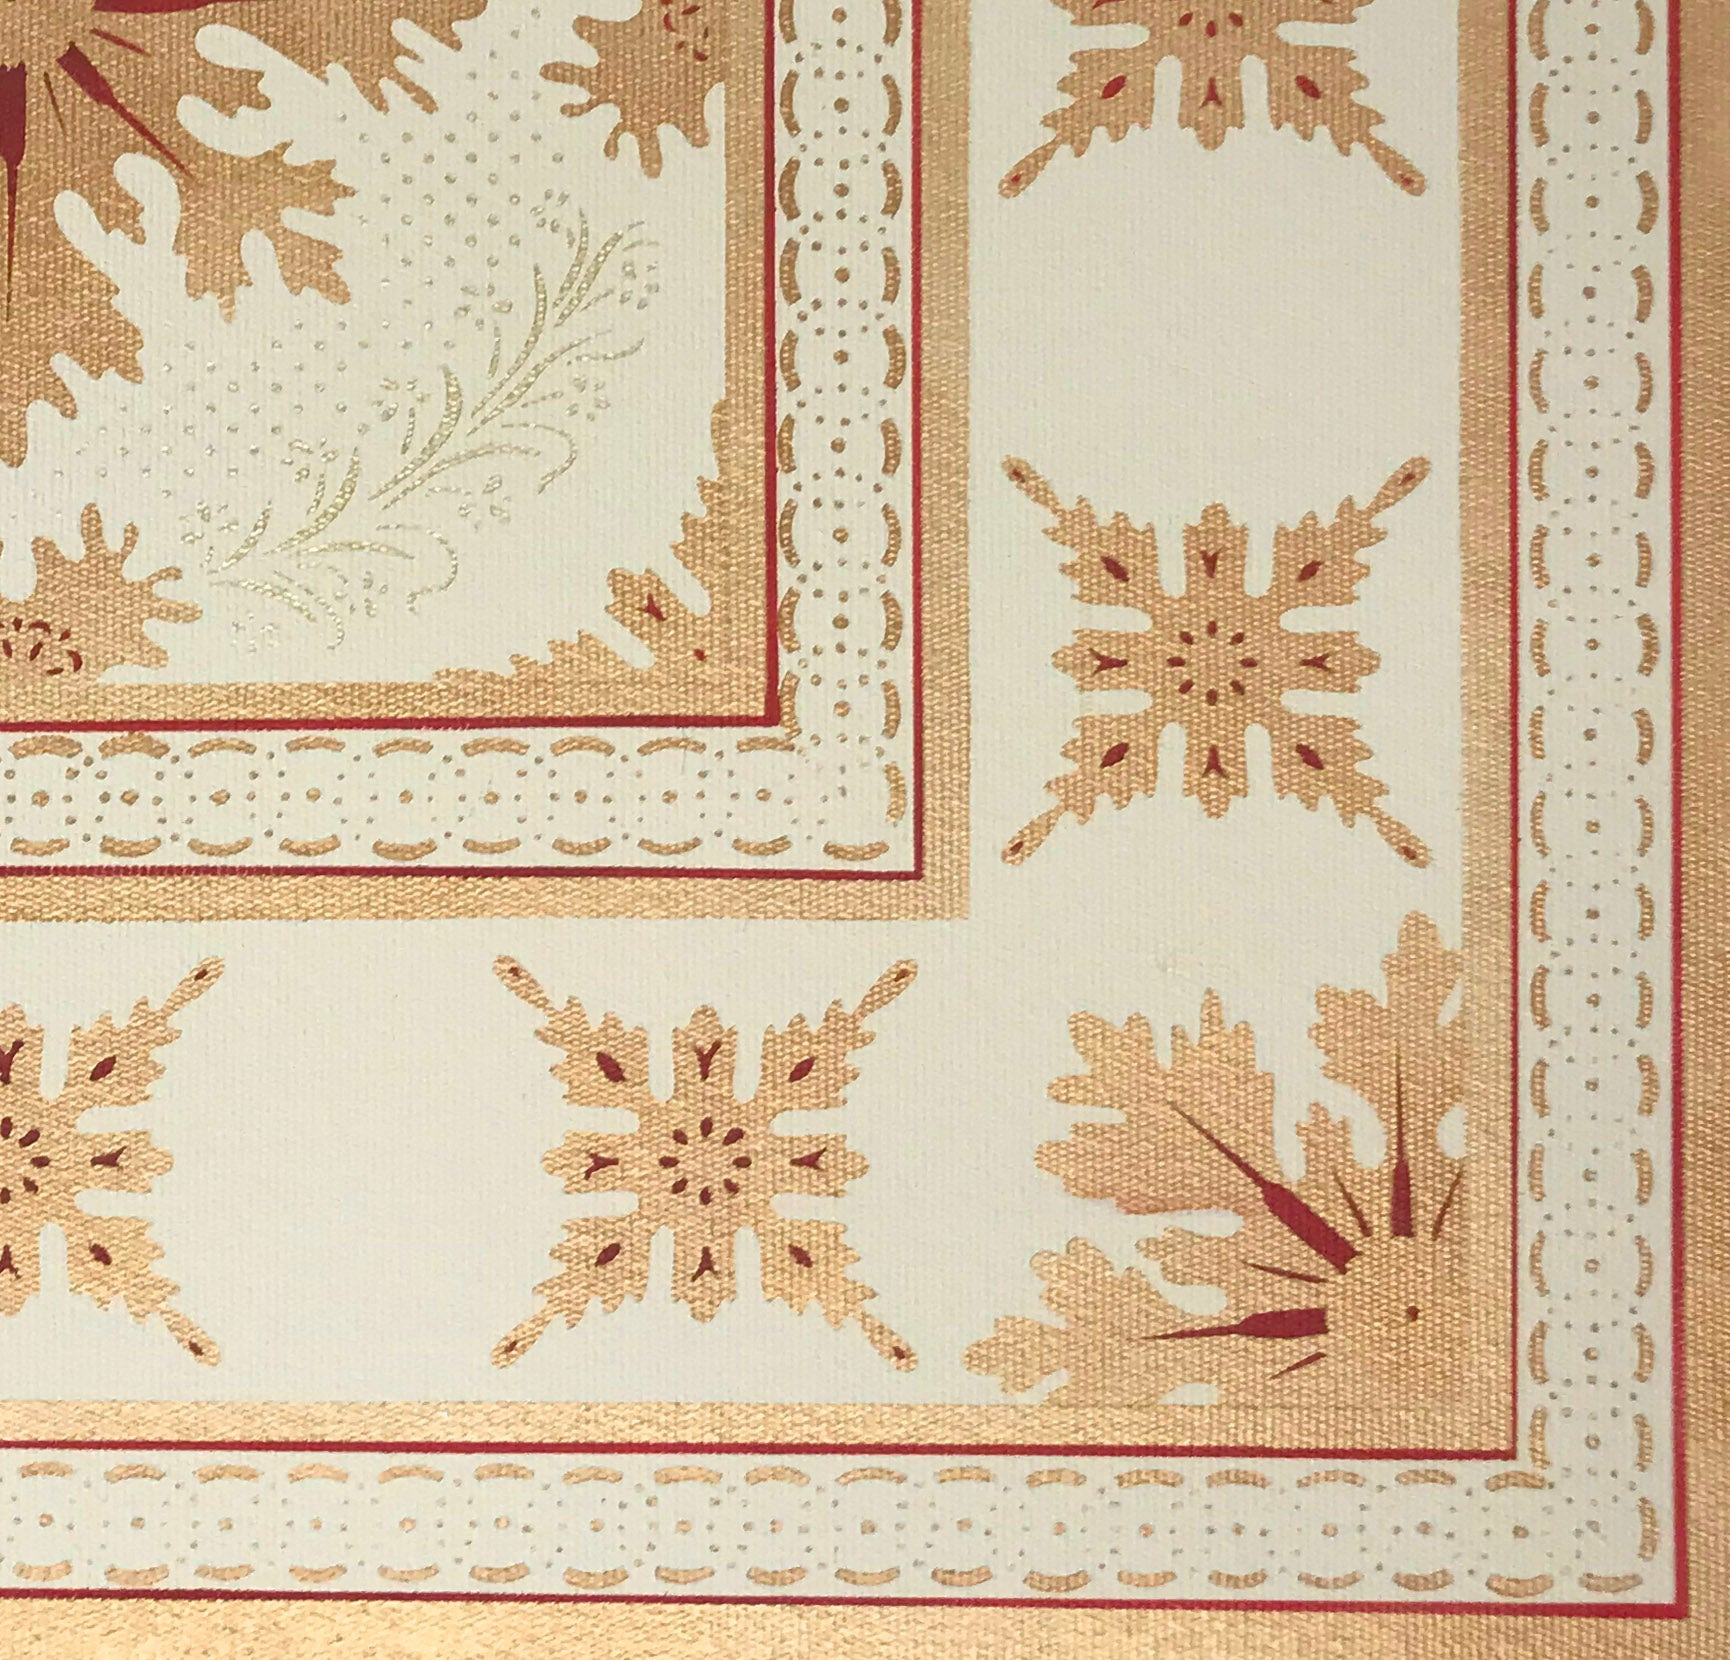 Close up of the corner of this floorcloth showing the border which is a combination of elements from the interior motifs, lines, and a complimentary circle and dot pattern.